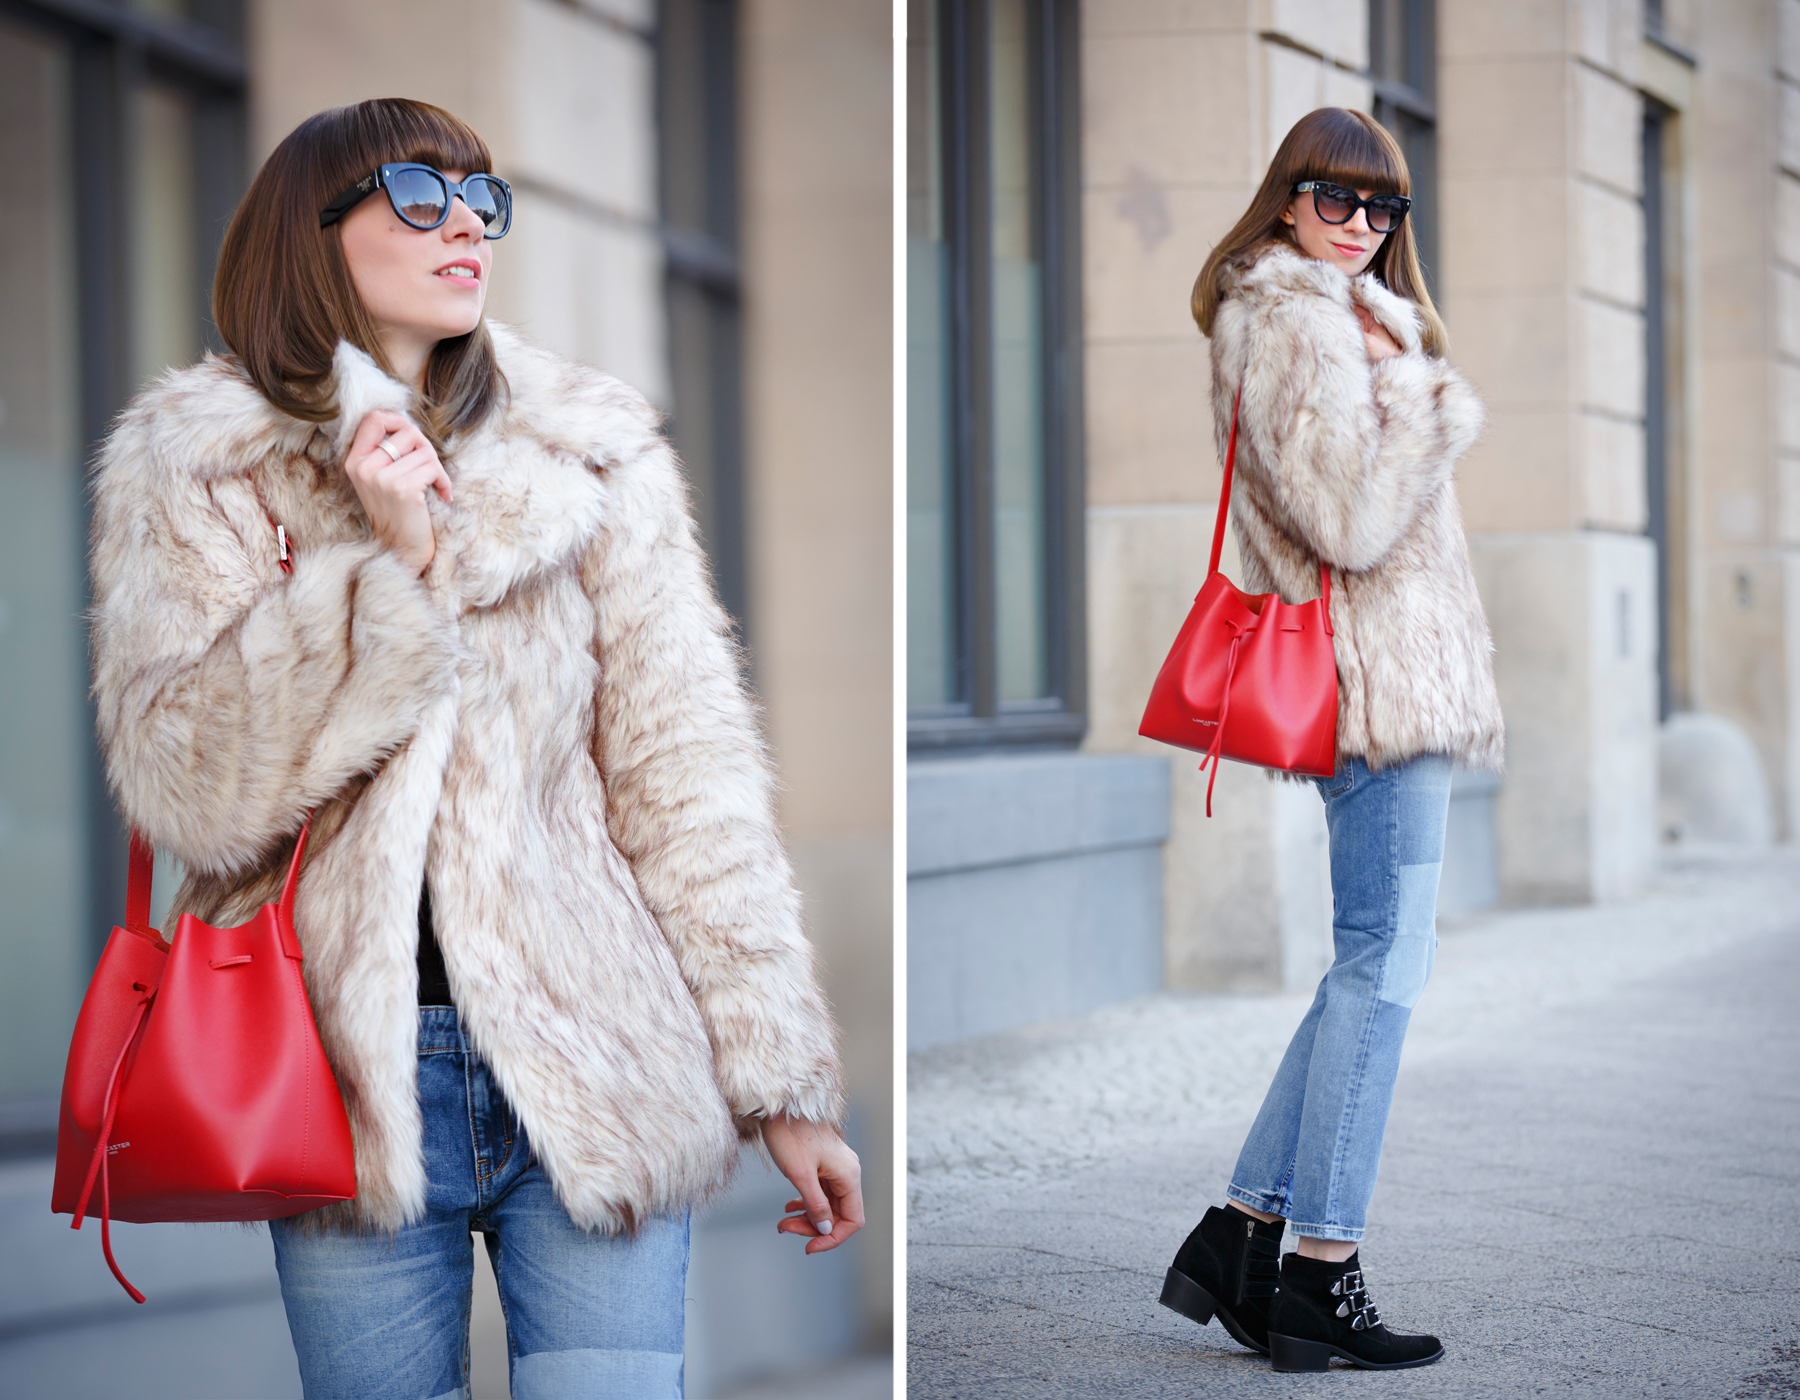 lancaster paris red bucket bag mansur gavriel lookalike patch boyfriend jeans mango fake fur coat asos black sacha booties ankle boots chloe suzanna prada sunglasses luxury style blogger cats & dogs blog ricarda schernus 5